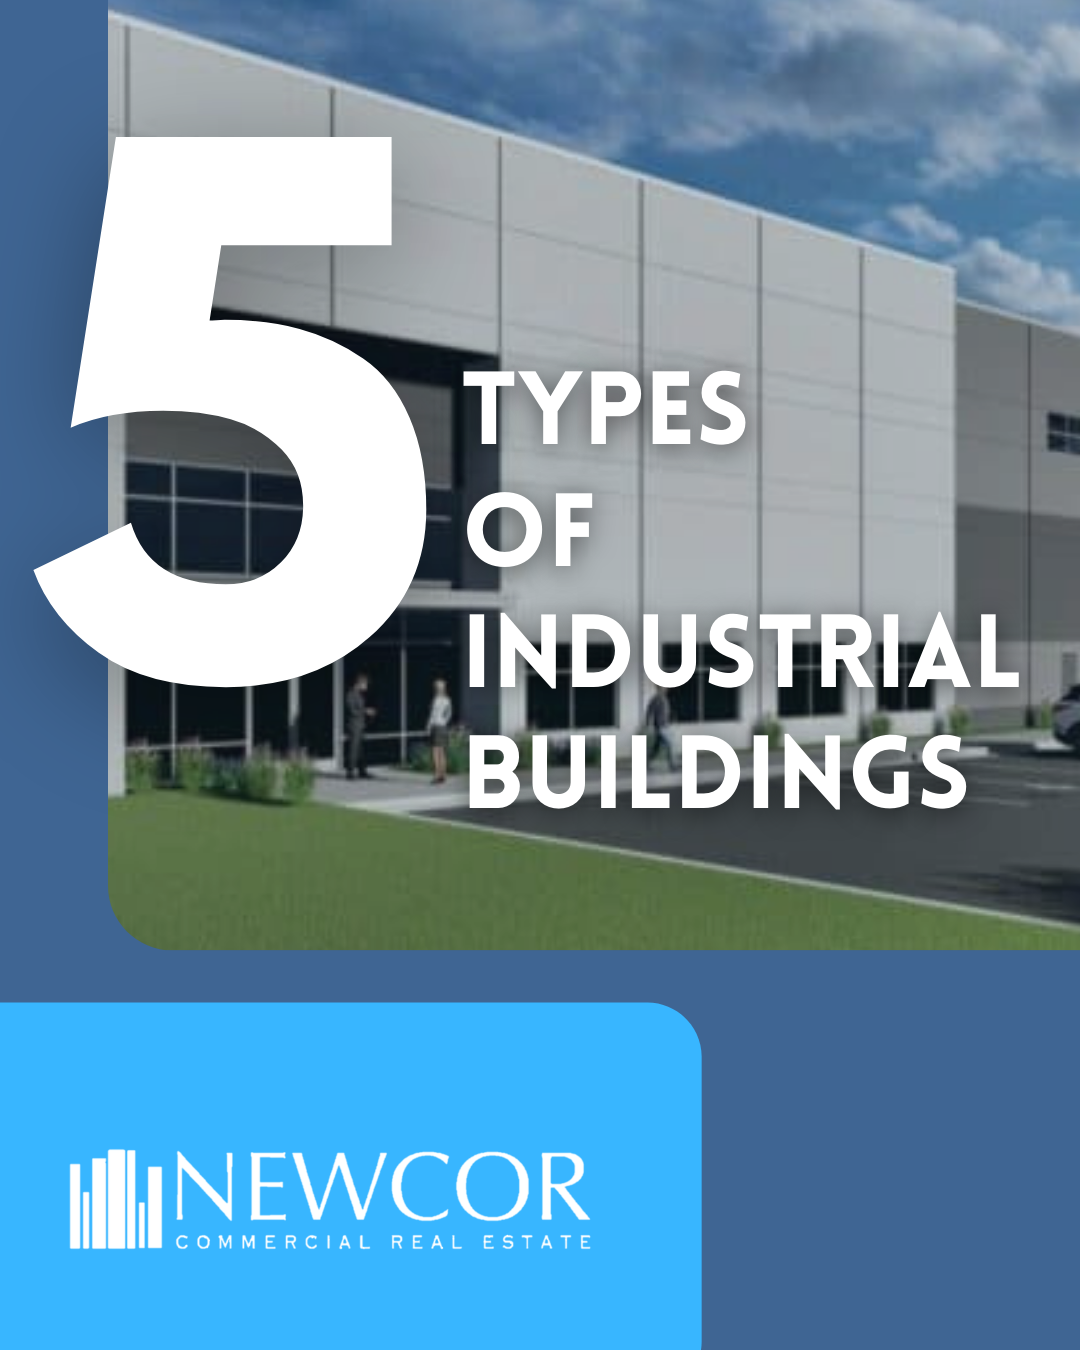 rsz 1types of commercial office buildings